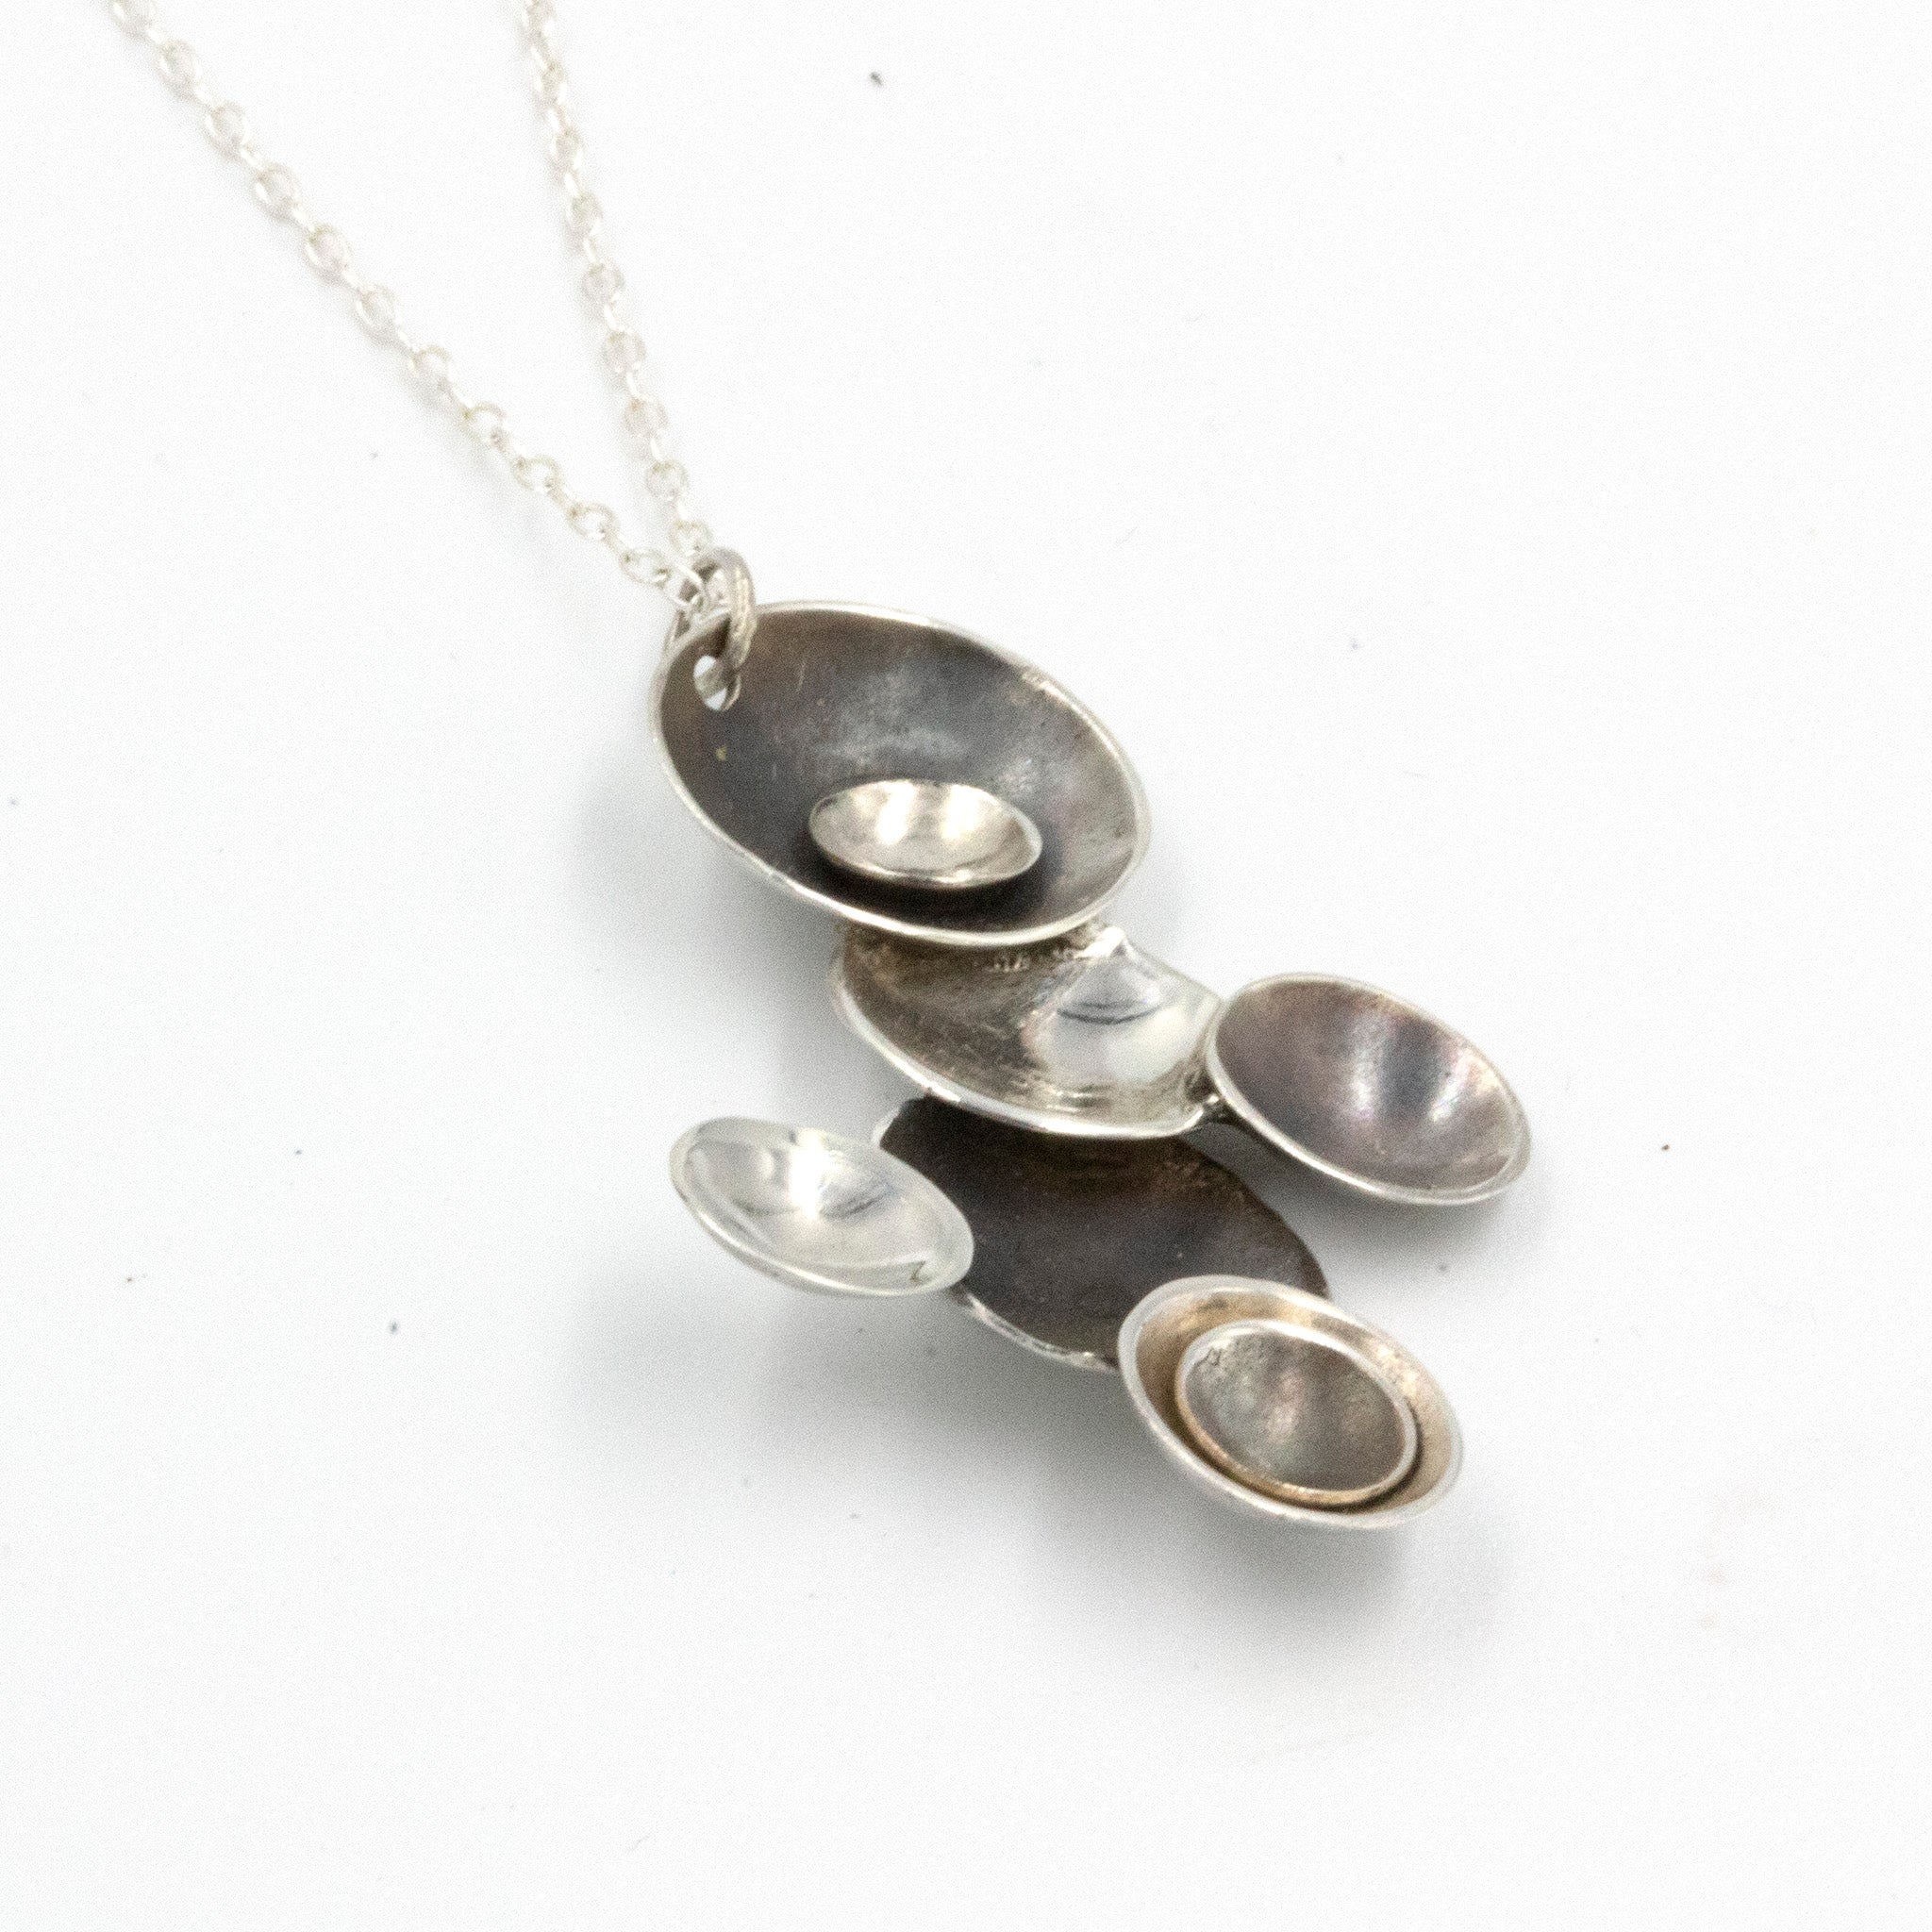 Handmade sterling silver 'Moons' necklace, by Gemma Tremayne Jewellery. This handcrafted necklace is inspired by the alignment of planets and moons in orbit, and features a number of domed  discs, each with a deep patina or high polish. This is a truly elegant and unique piece.